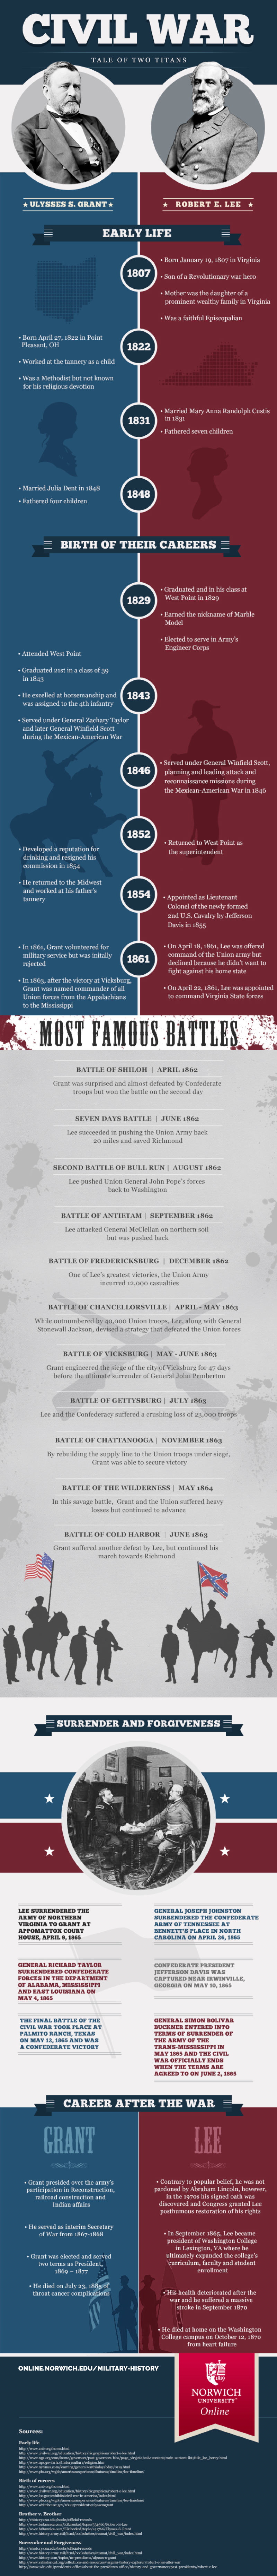 infographic on civil war titans Robert E. Lee and Ulysses S. Grant